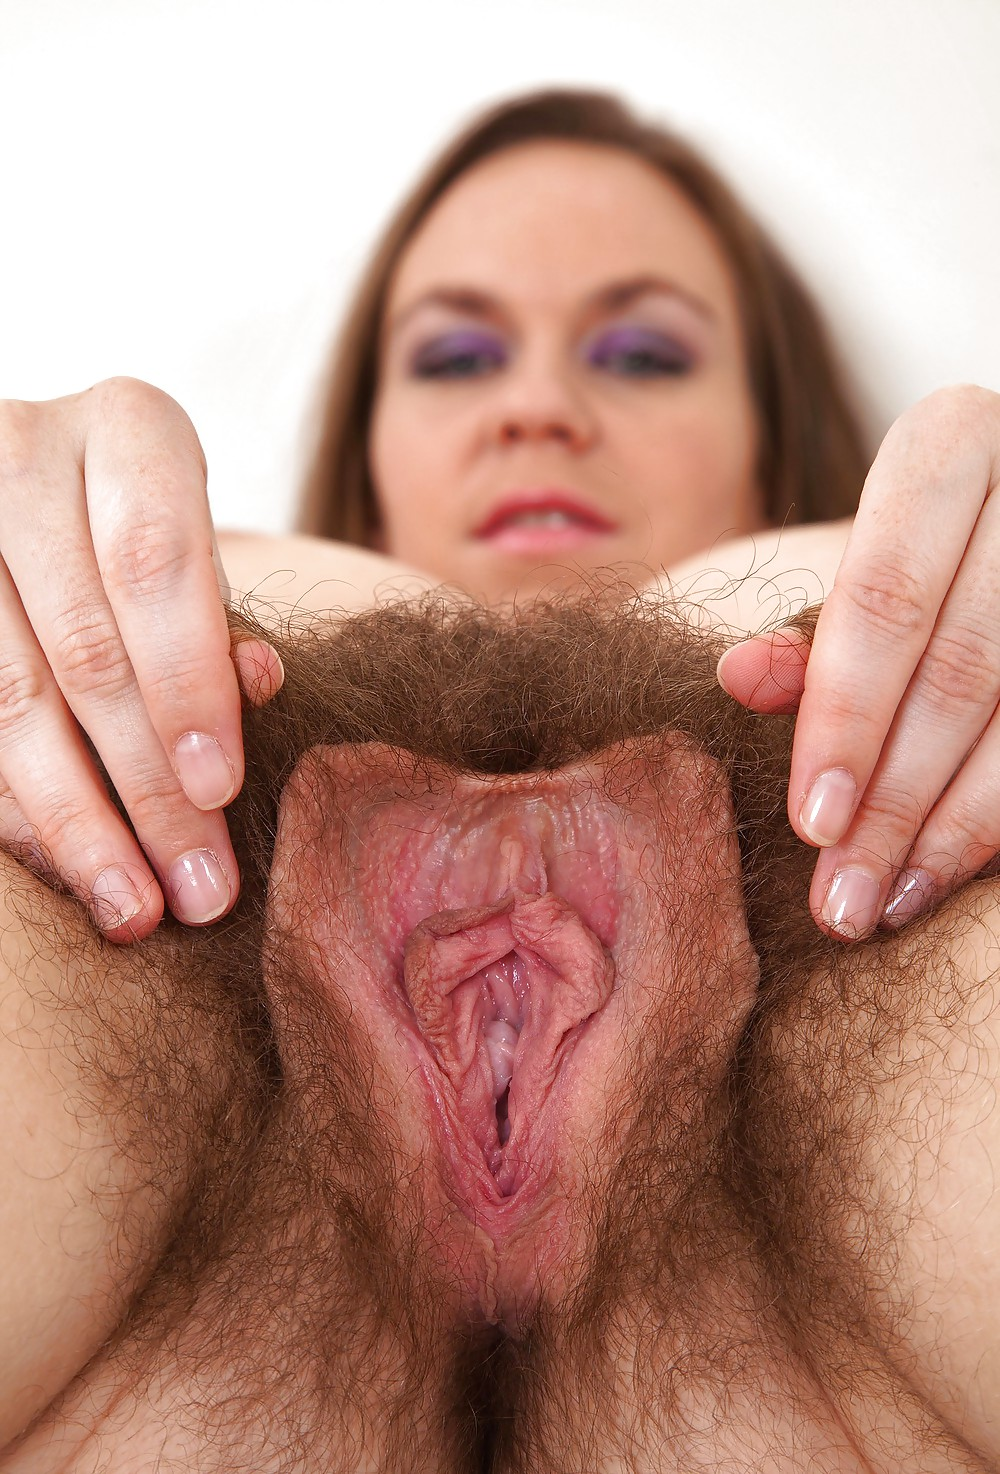 hairy-lestai-cunt